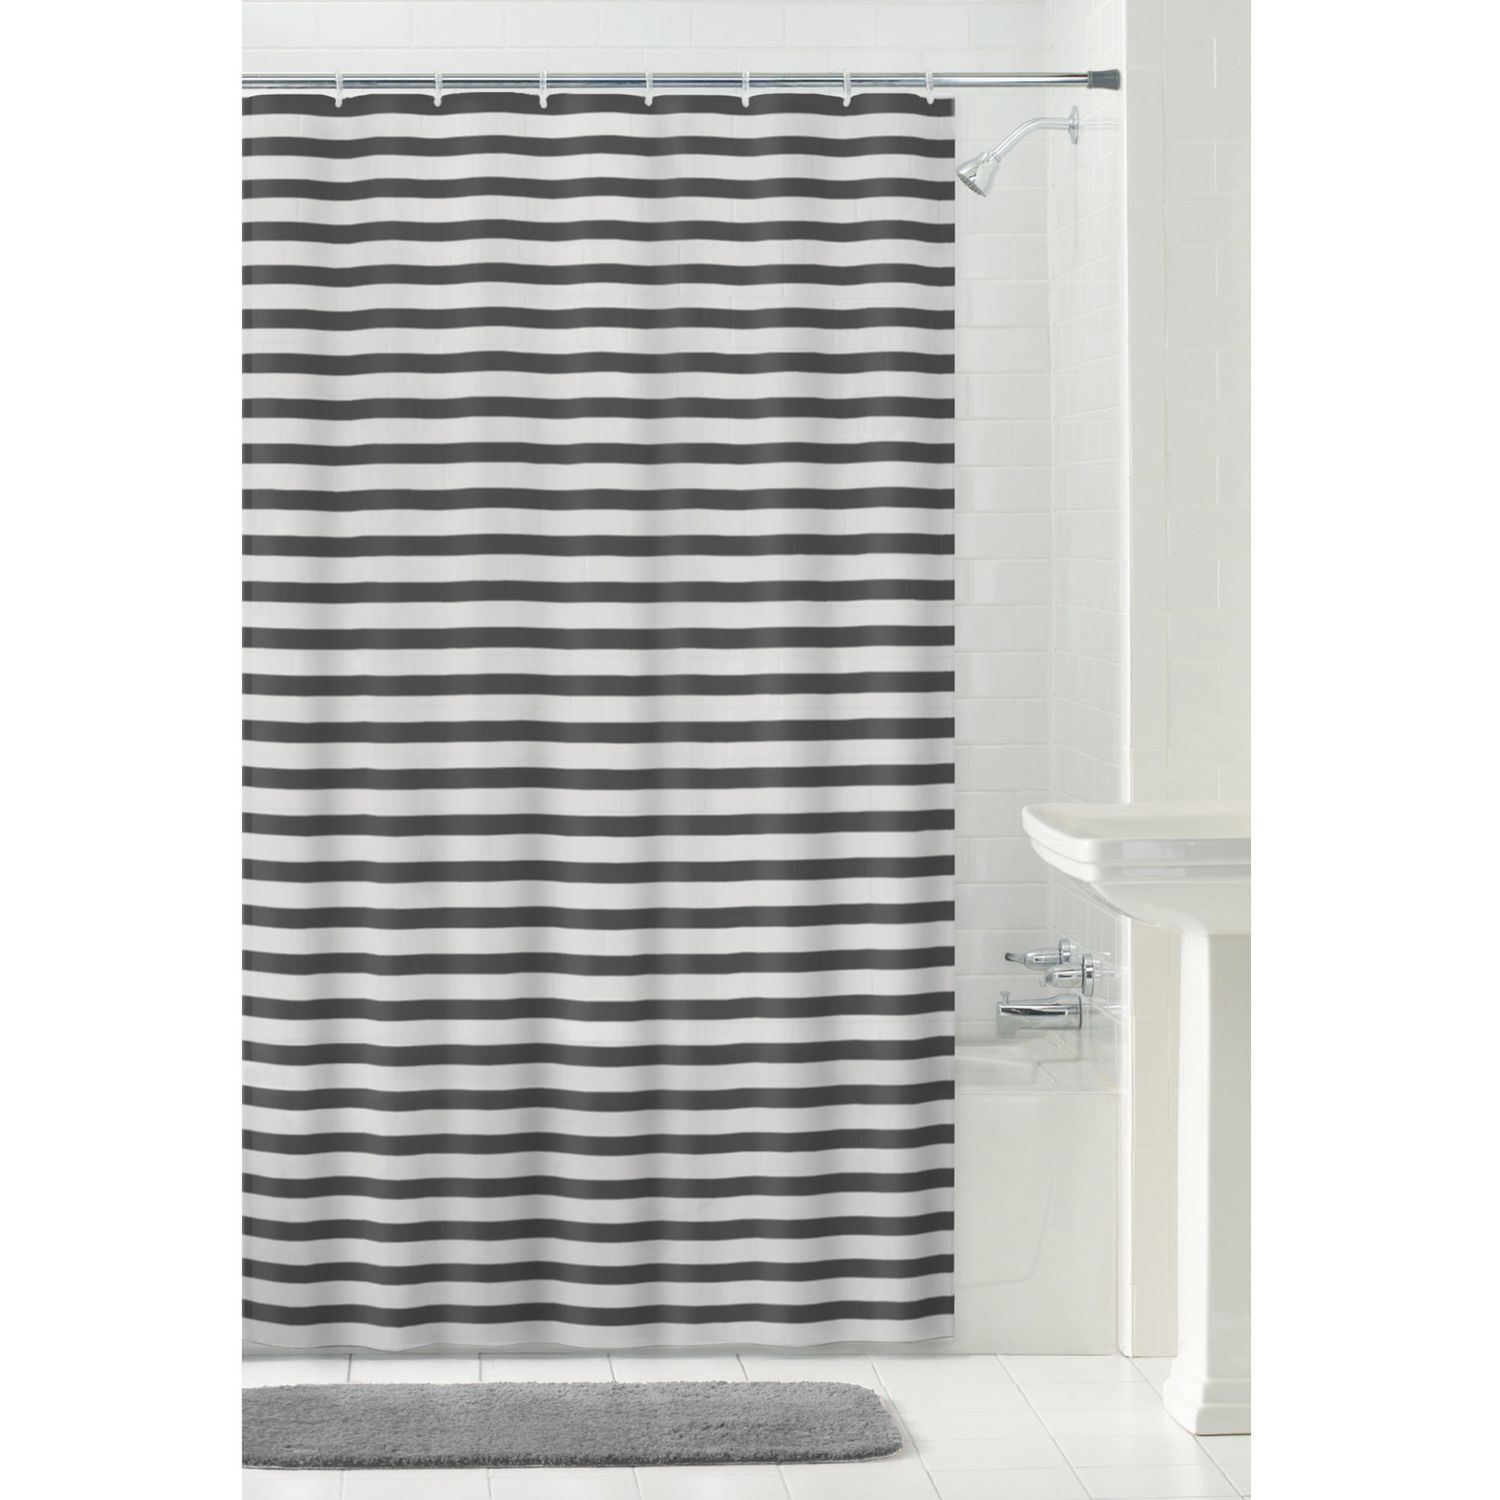 Mainstays Peva Luisa Shower Curtain Or Liner 70 Inches X 72 Inches Grey